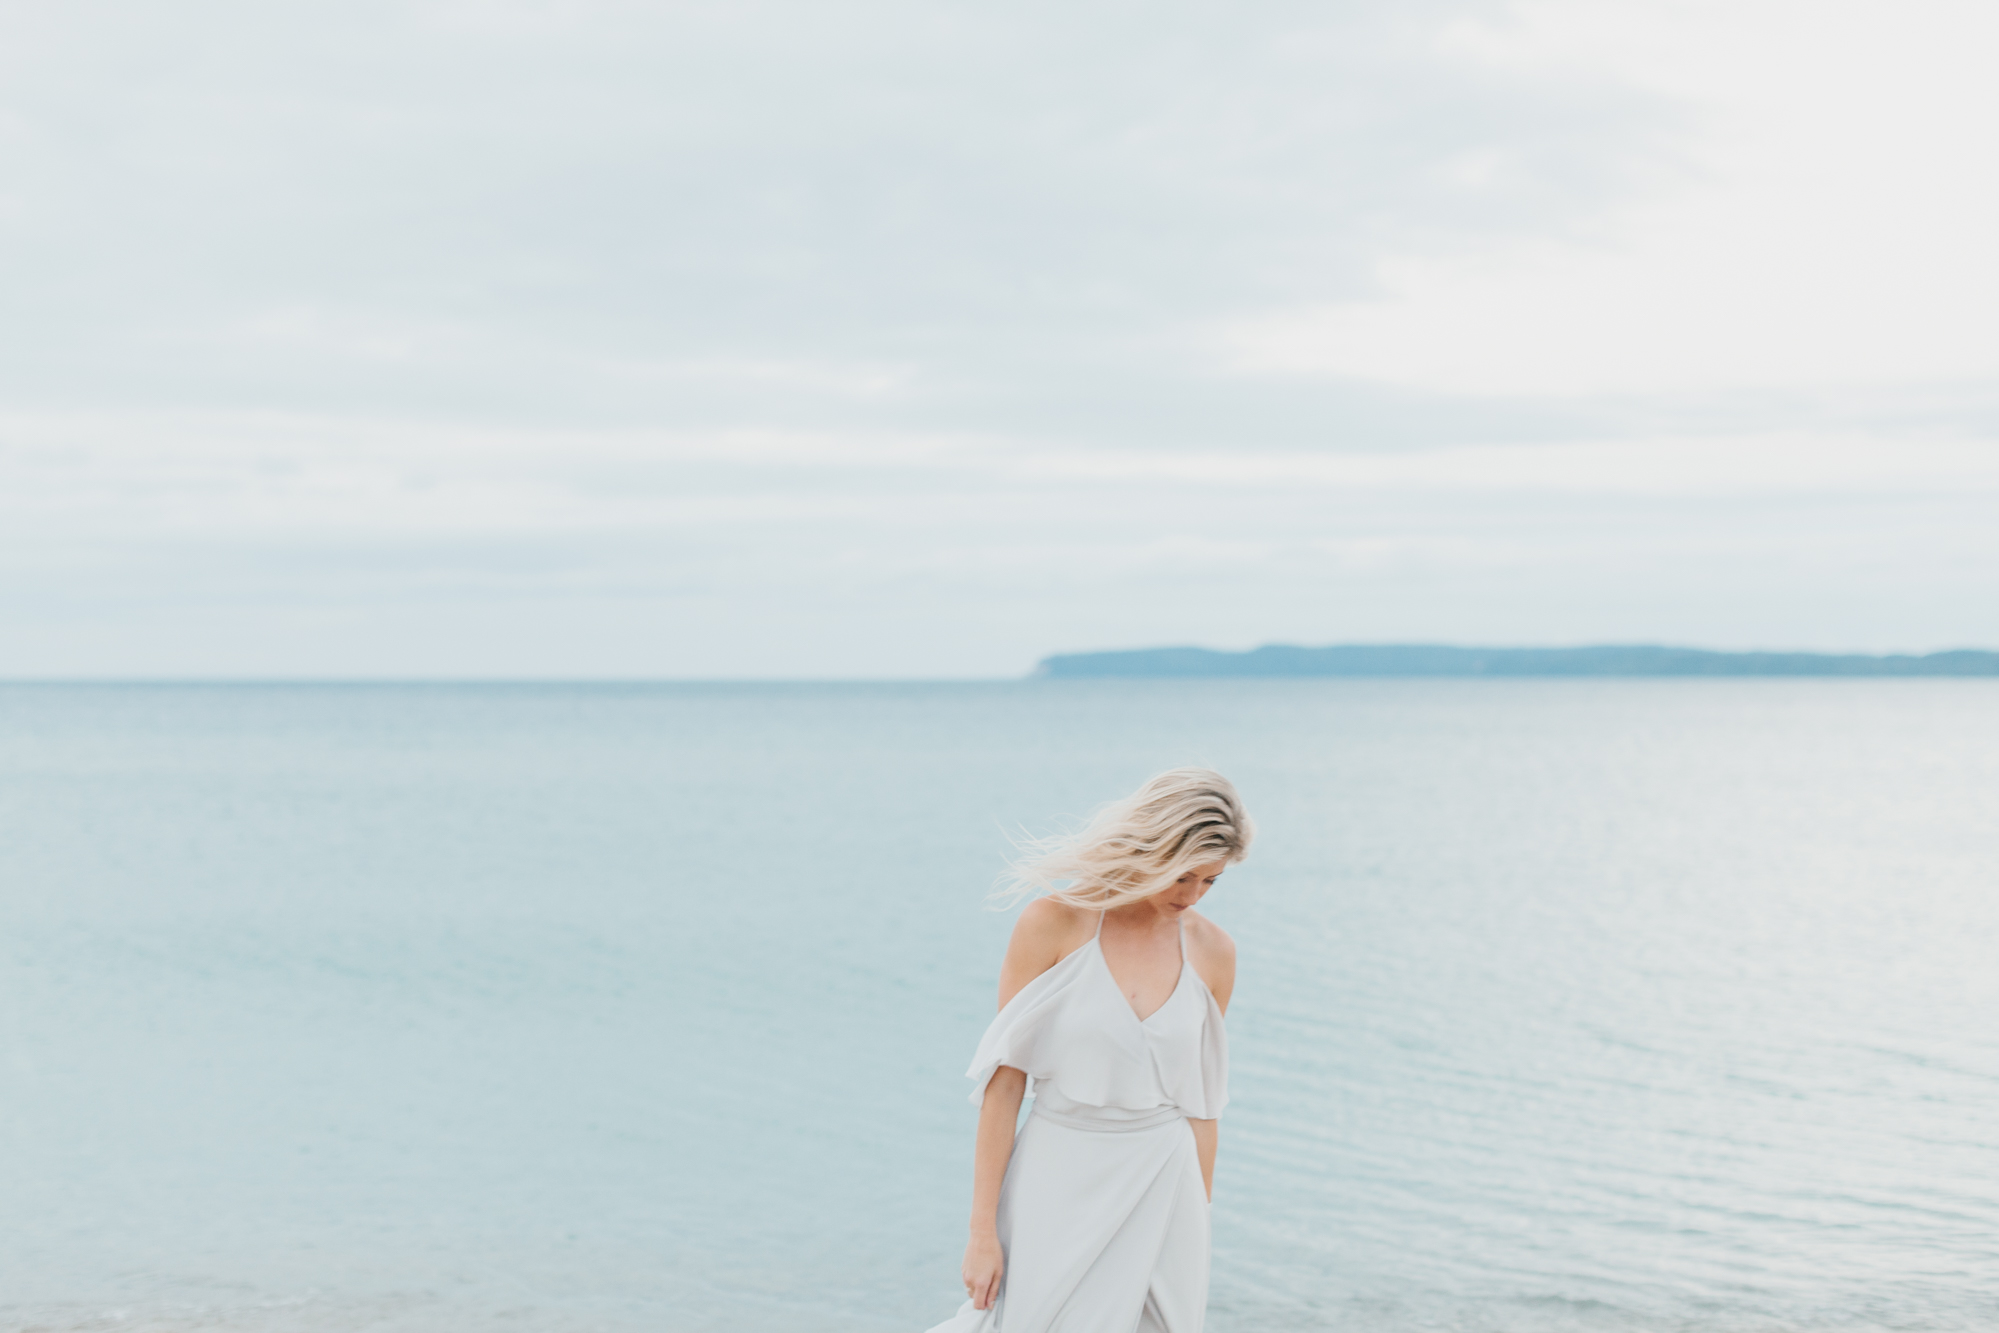 Sleeping Bear Dunes Bridal Portraits Wedding Photographer Mae Stier-043.jpg